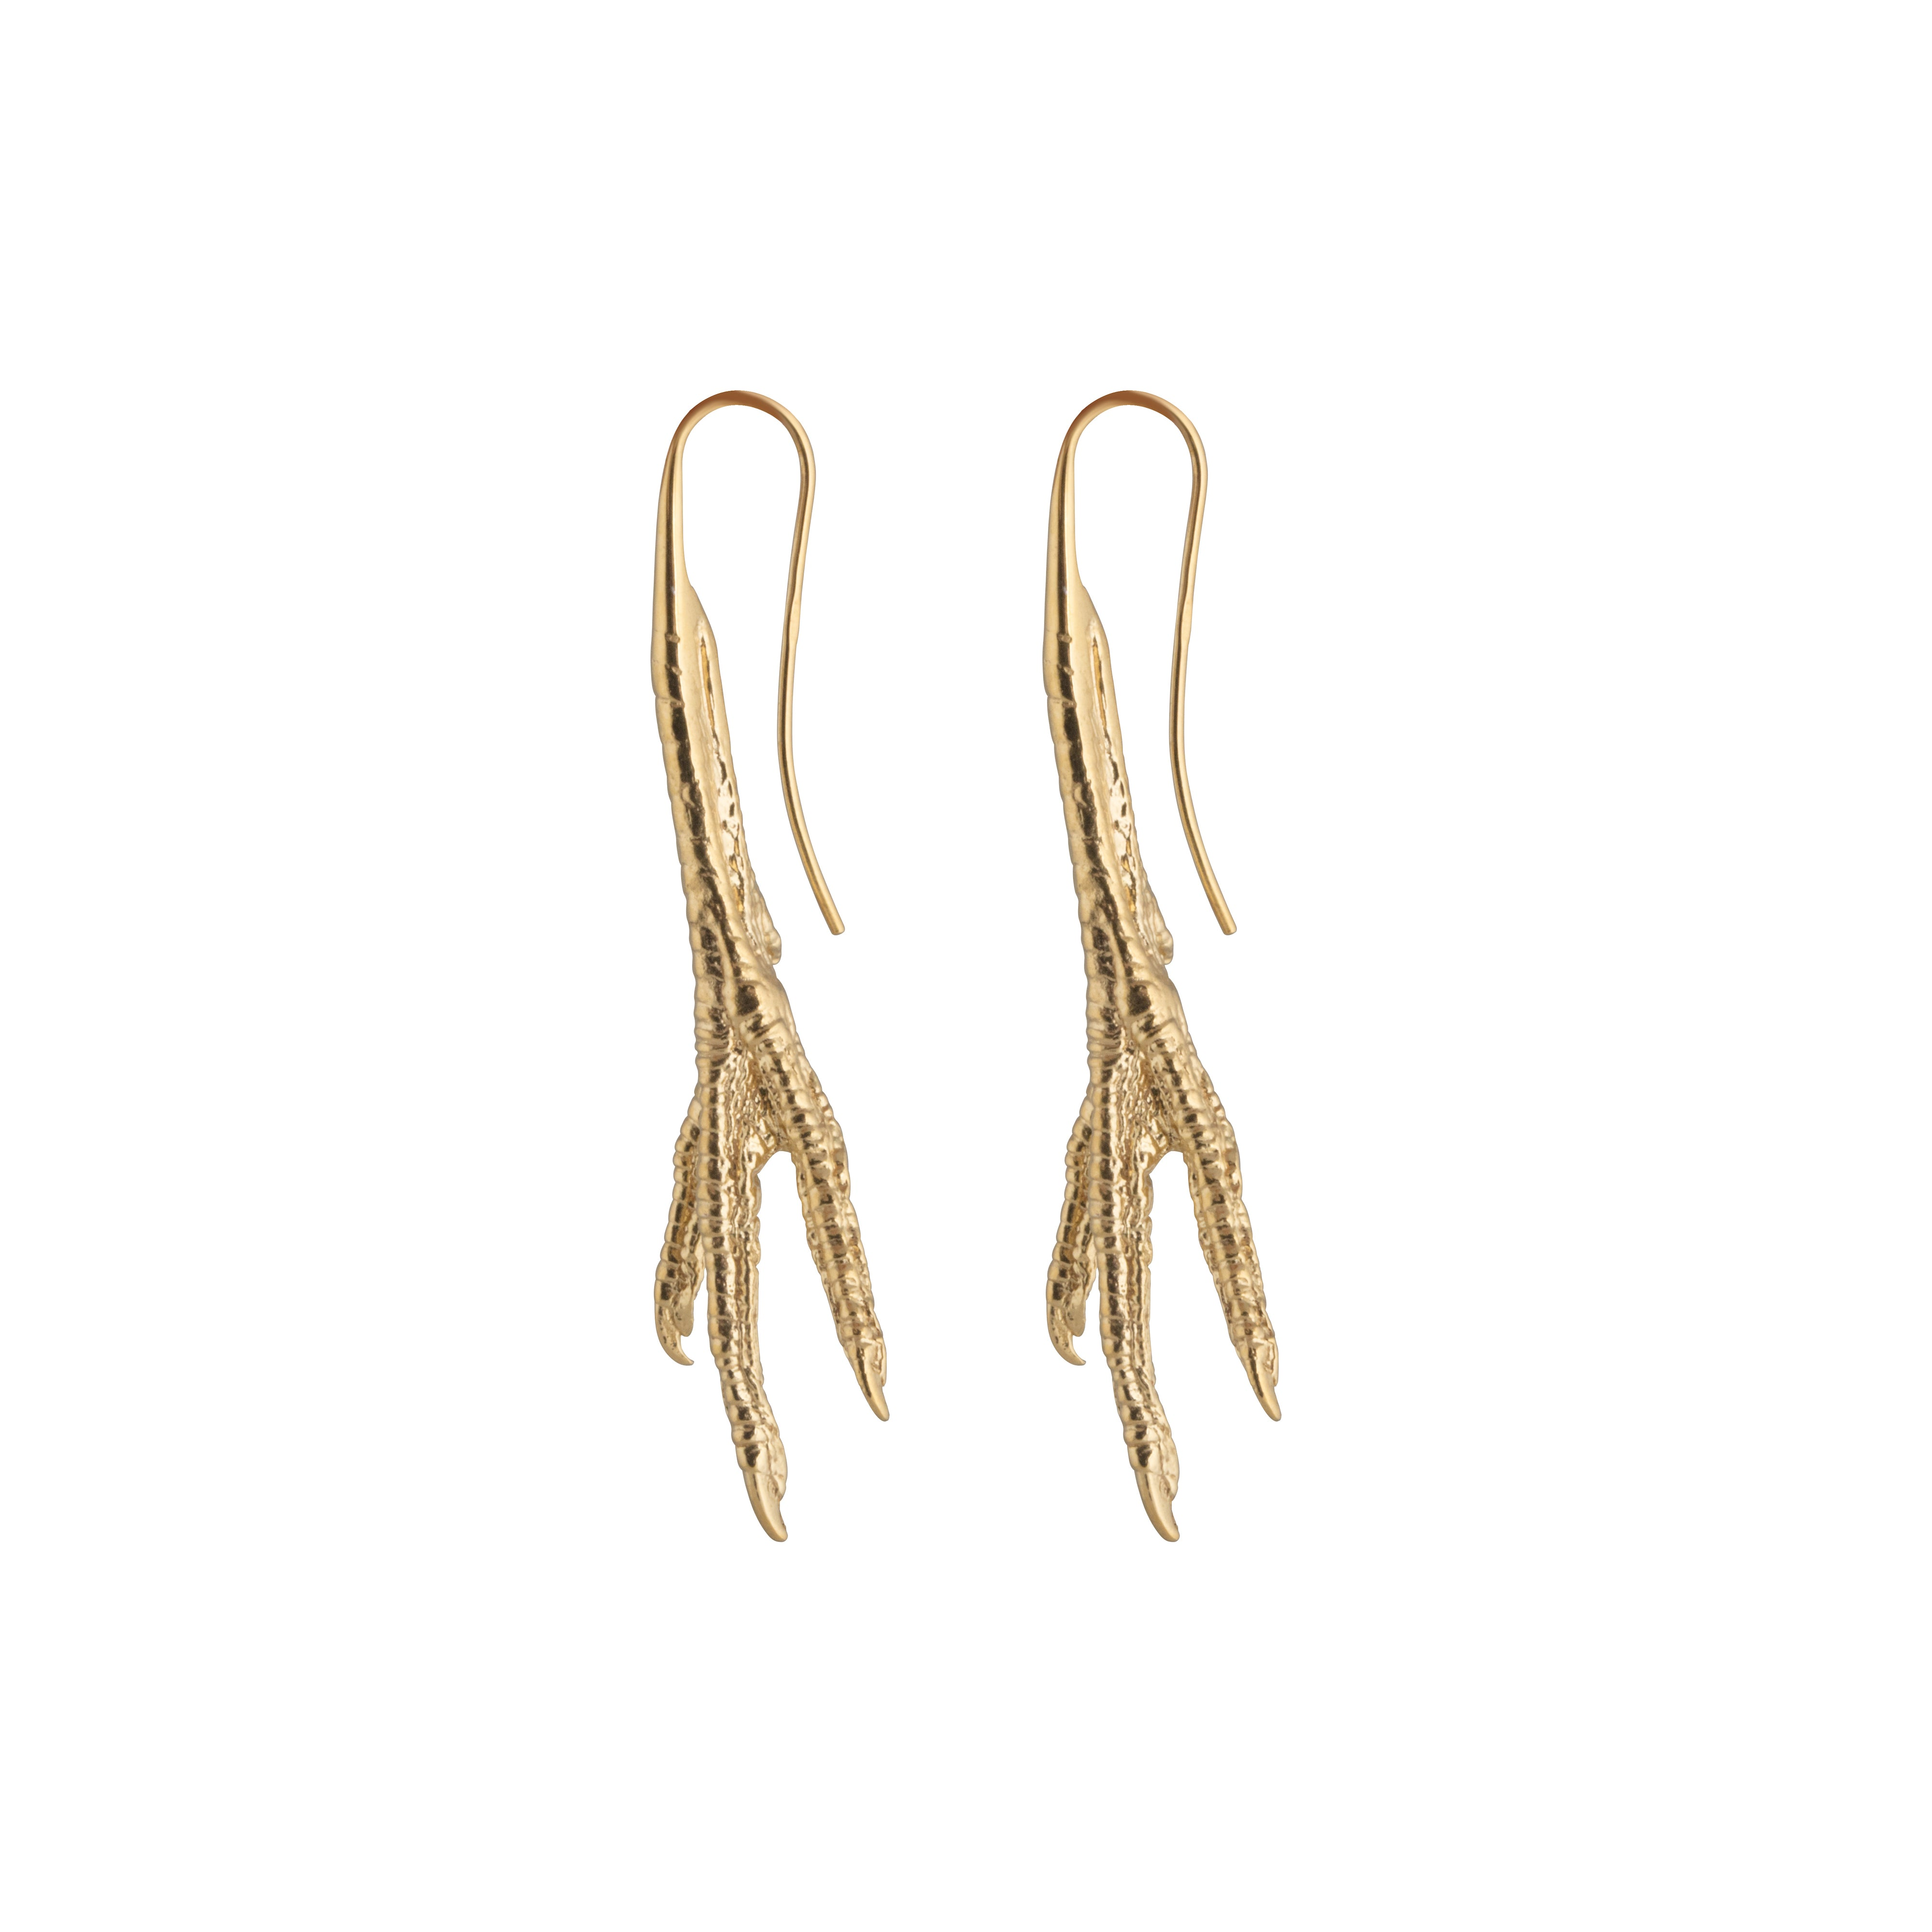 Chicken Feet Earrings gold plated